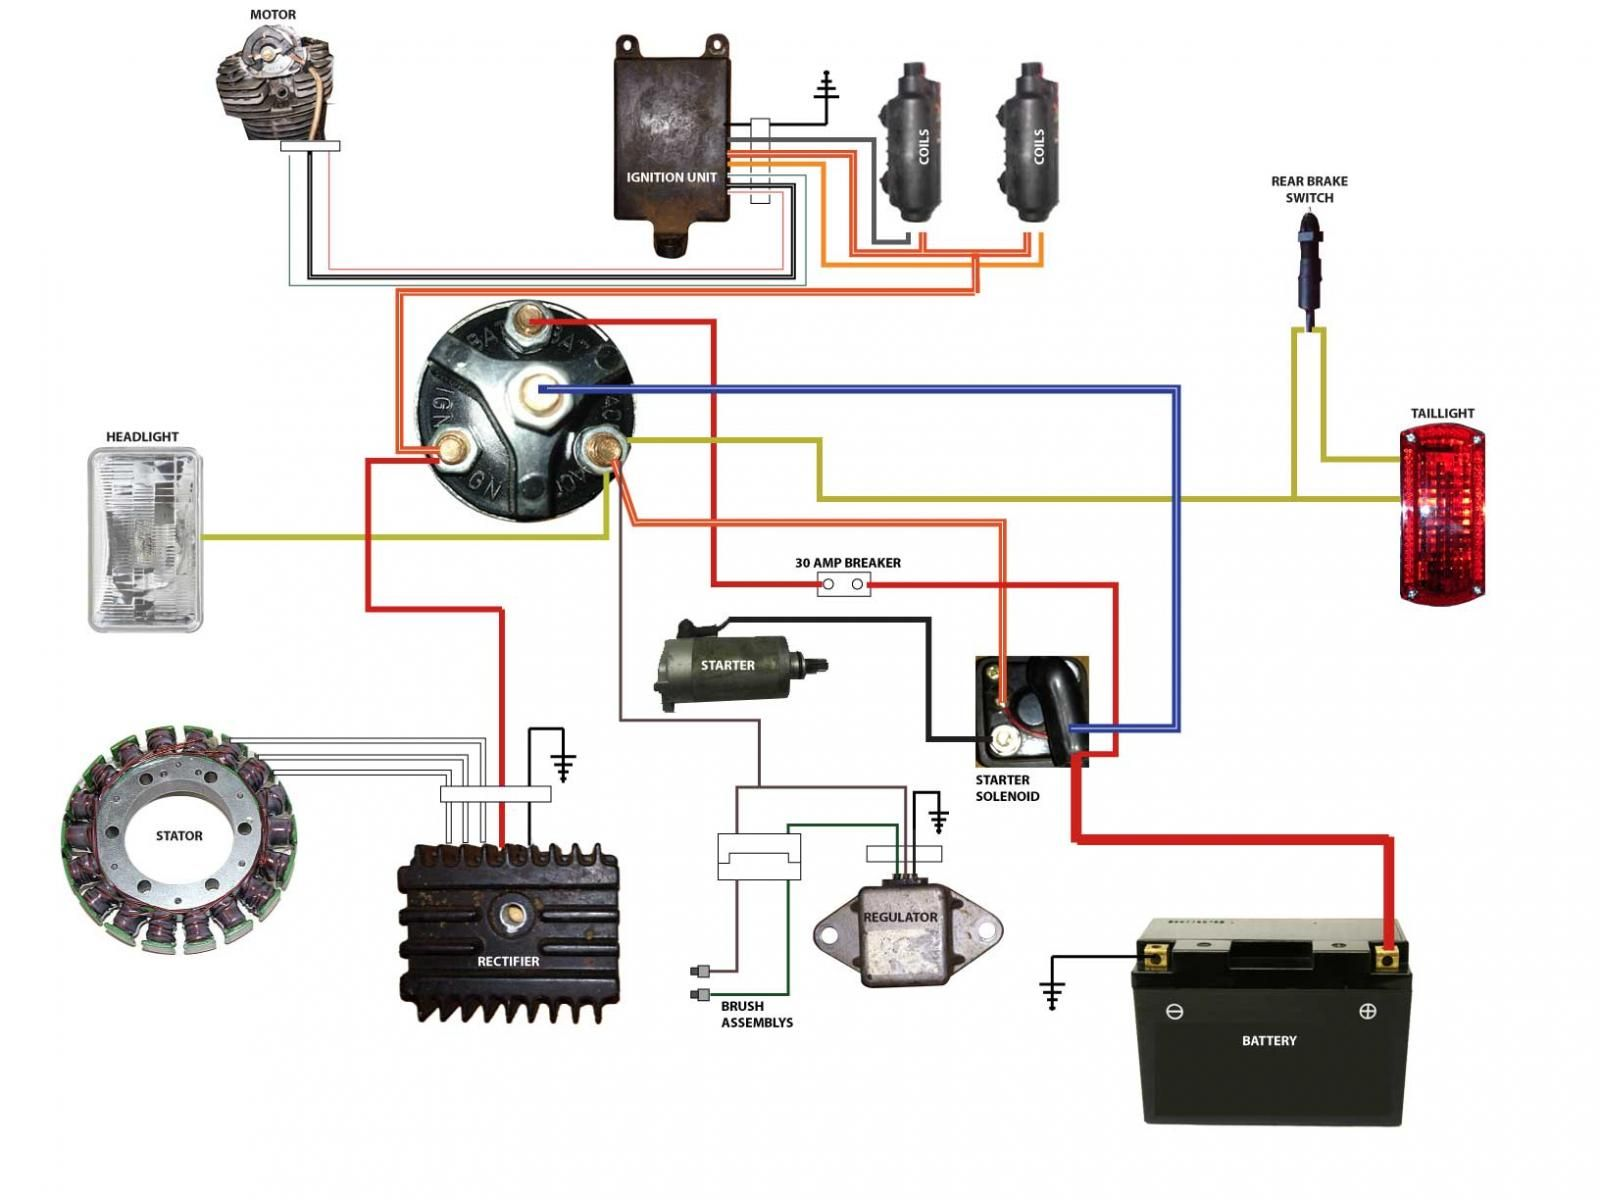 Starter Switch Diagram : Suzuki ignition switch diagram radiator